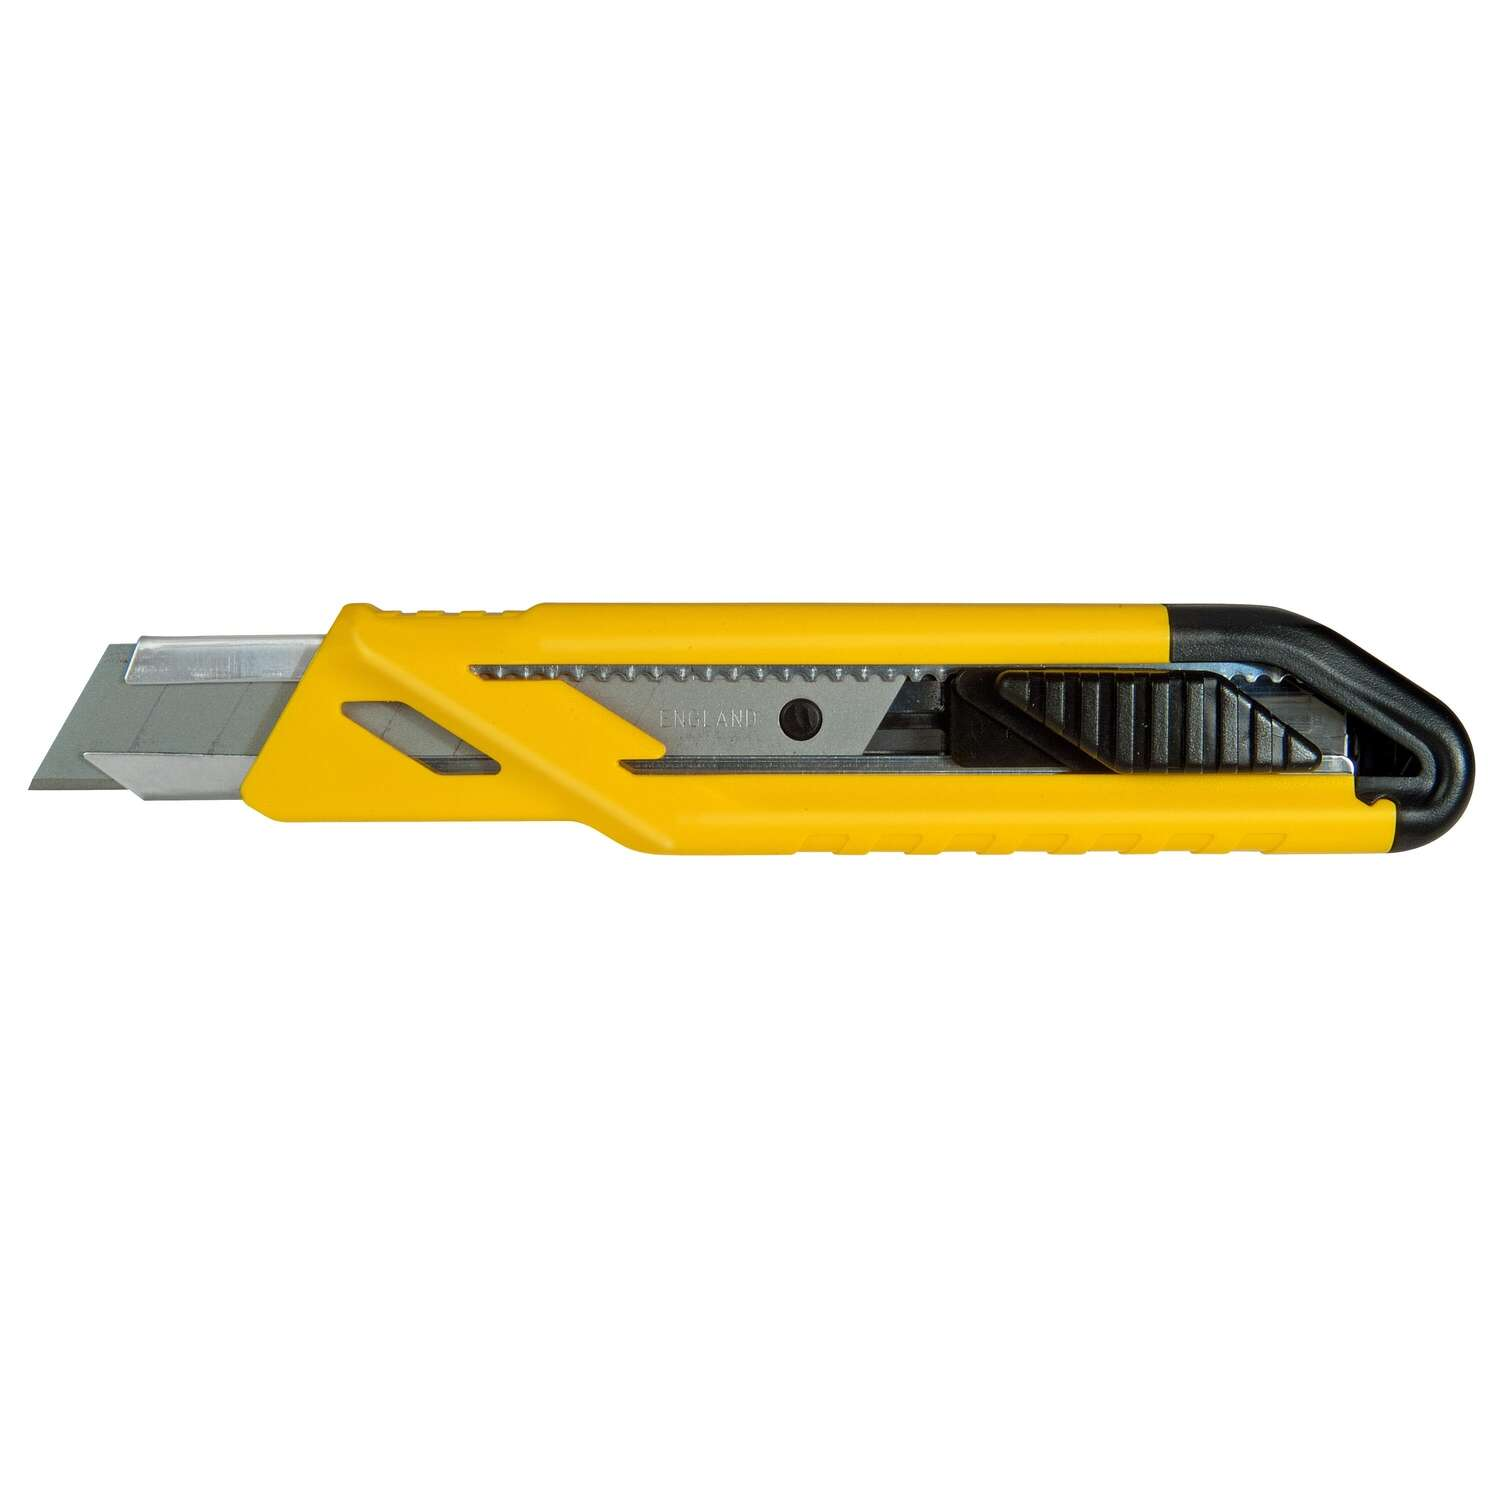 Stanley Retractable Snap-Off Utility Knife Black/Yellow 1 pk